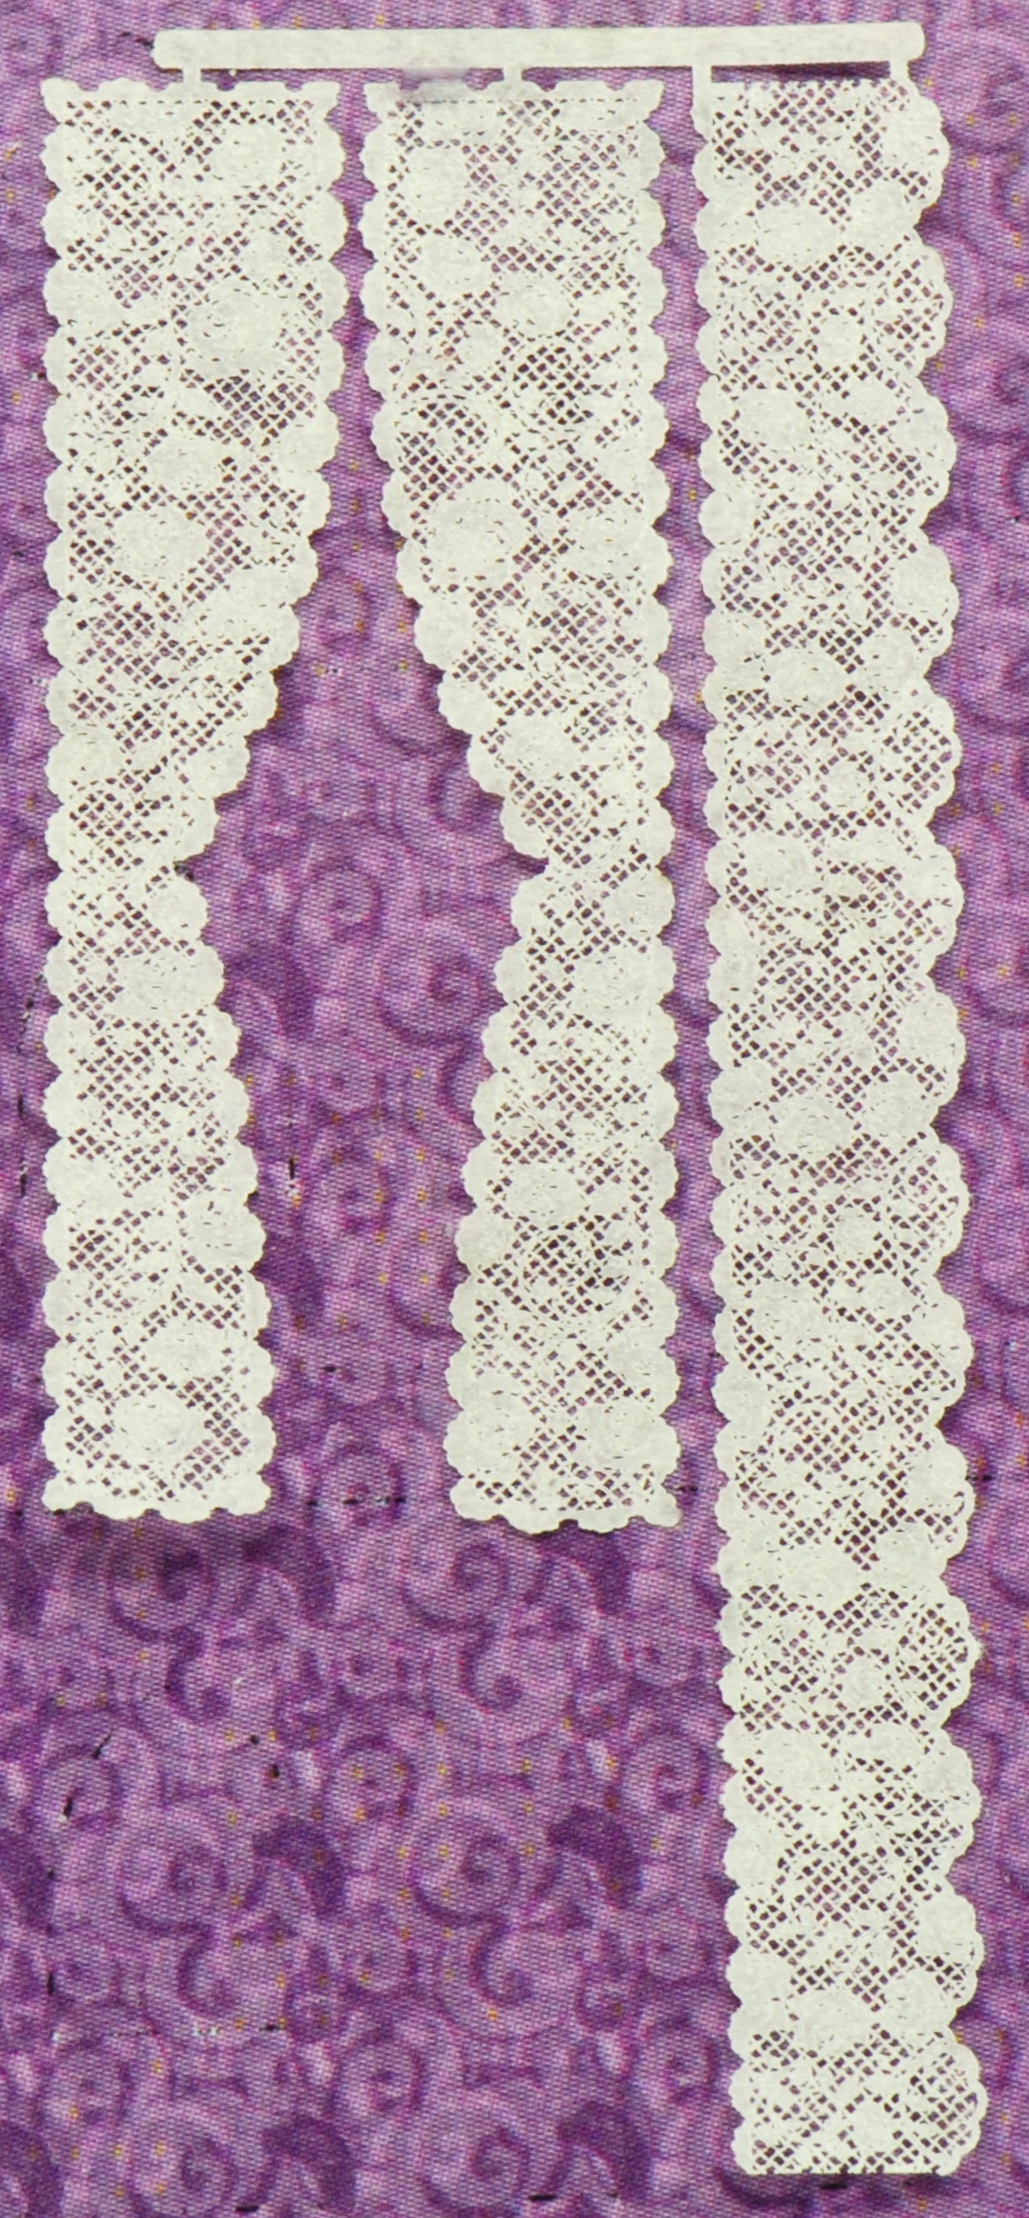 1:48 Rose #4 Single Panel Lace Curtains | Stewart ...